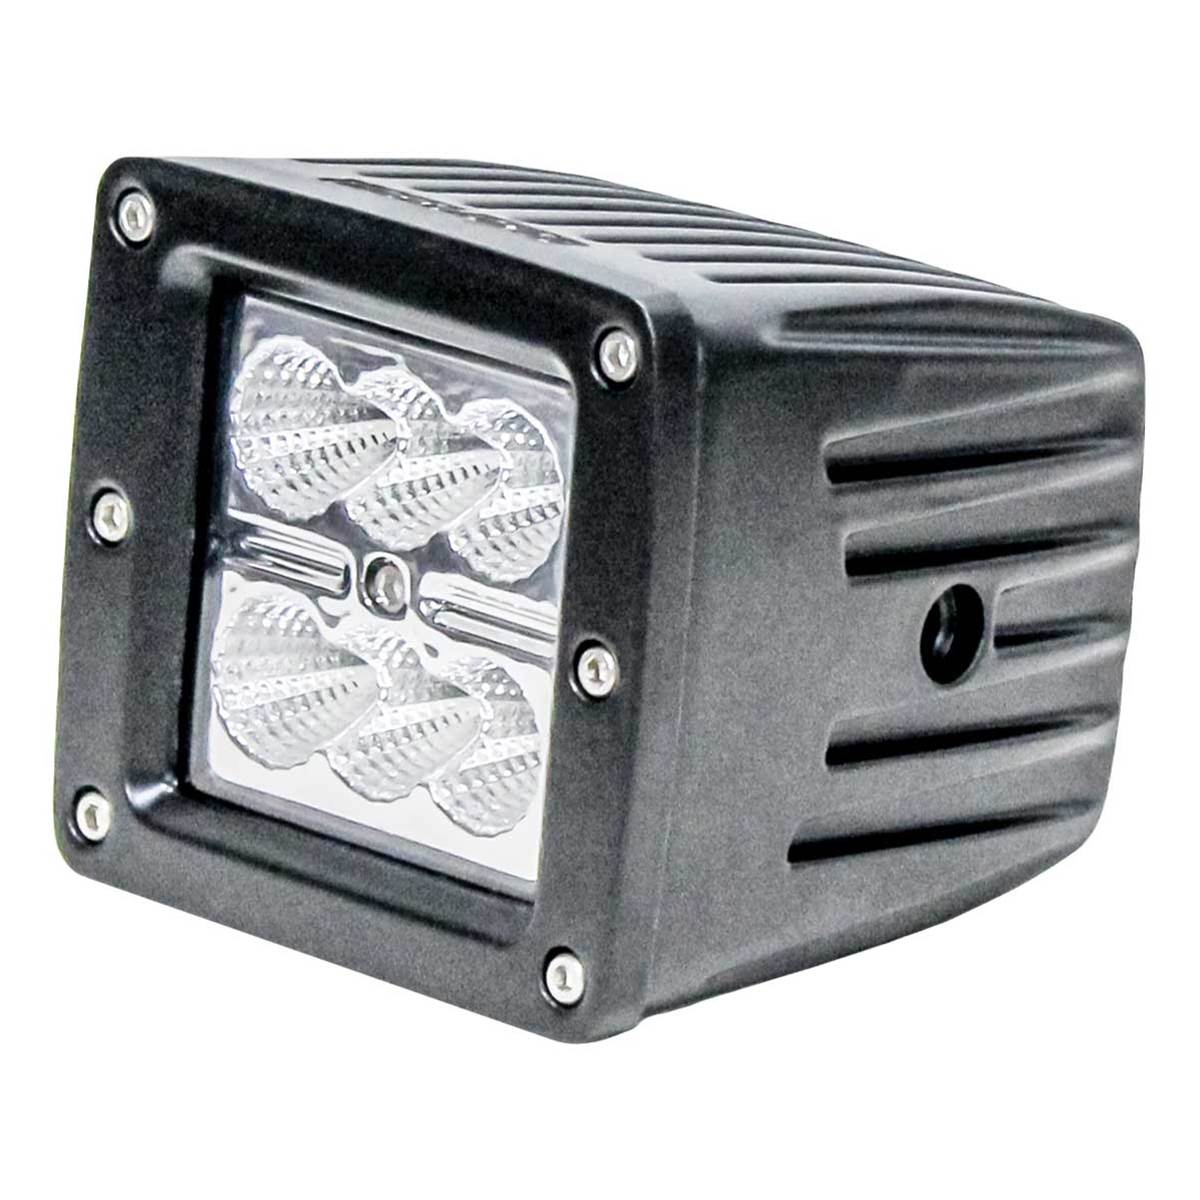 "KM LED 2.88"" x 3.25"" Light - Flood Beam"